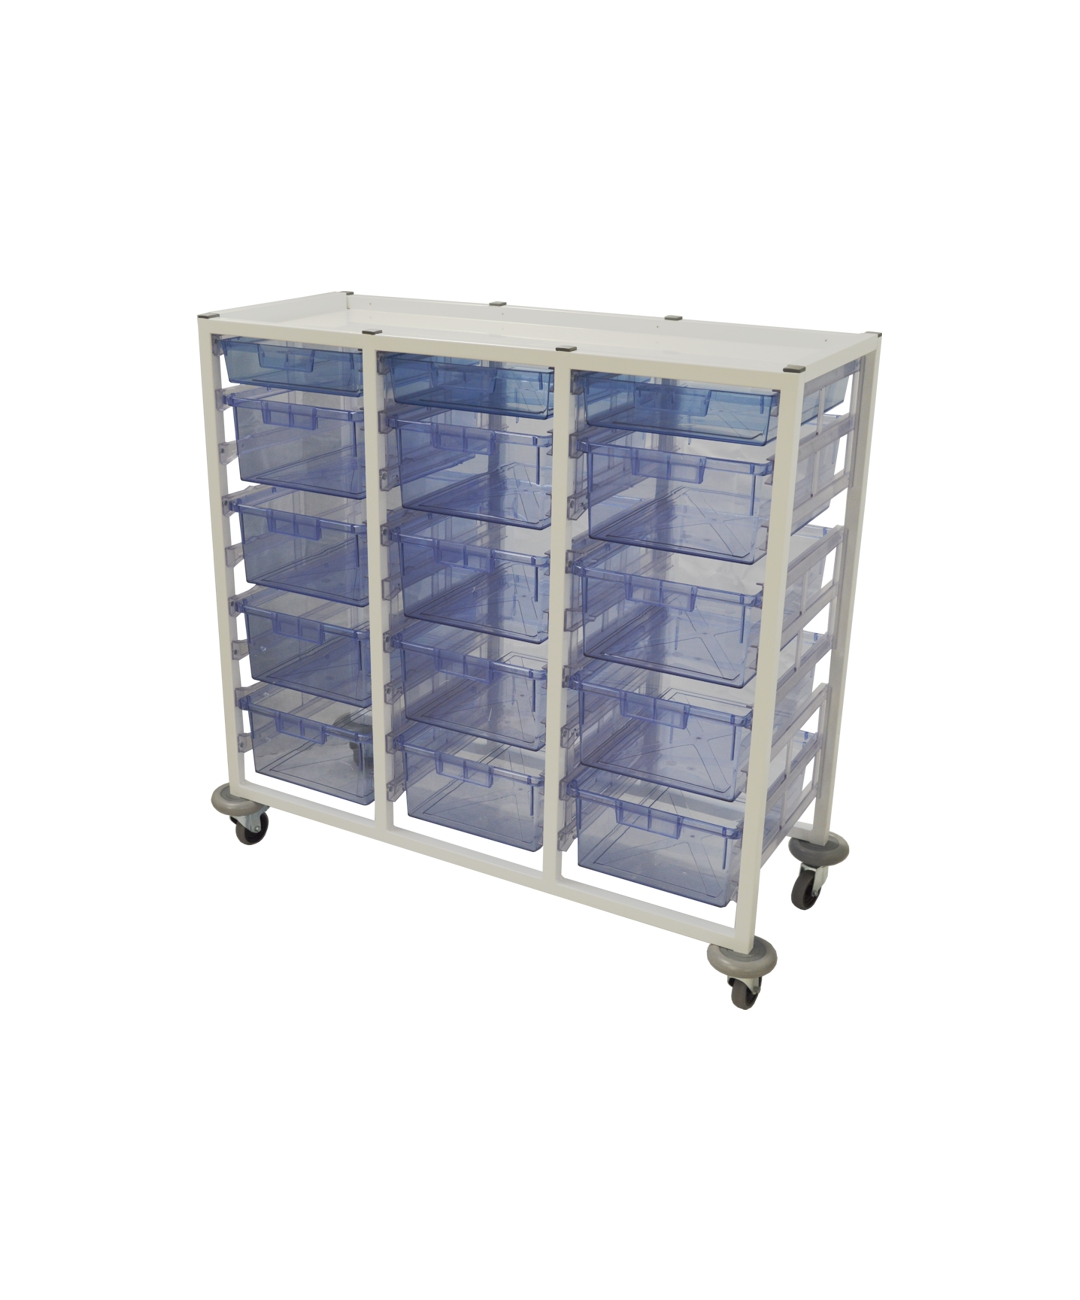 Care Trolley W1080 x D425 x H1035 (CTRO1080)